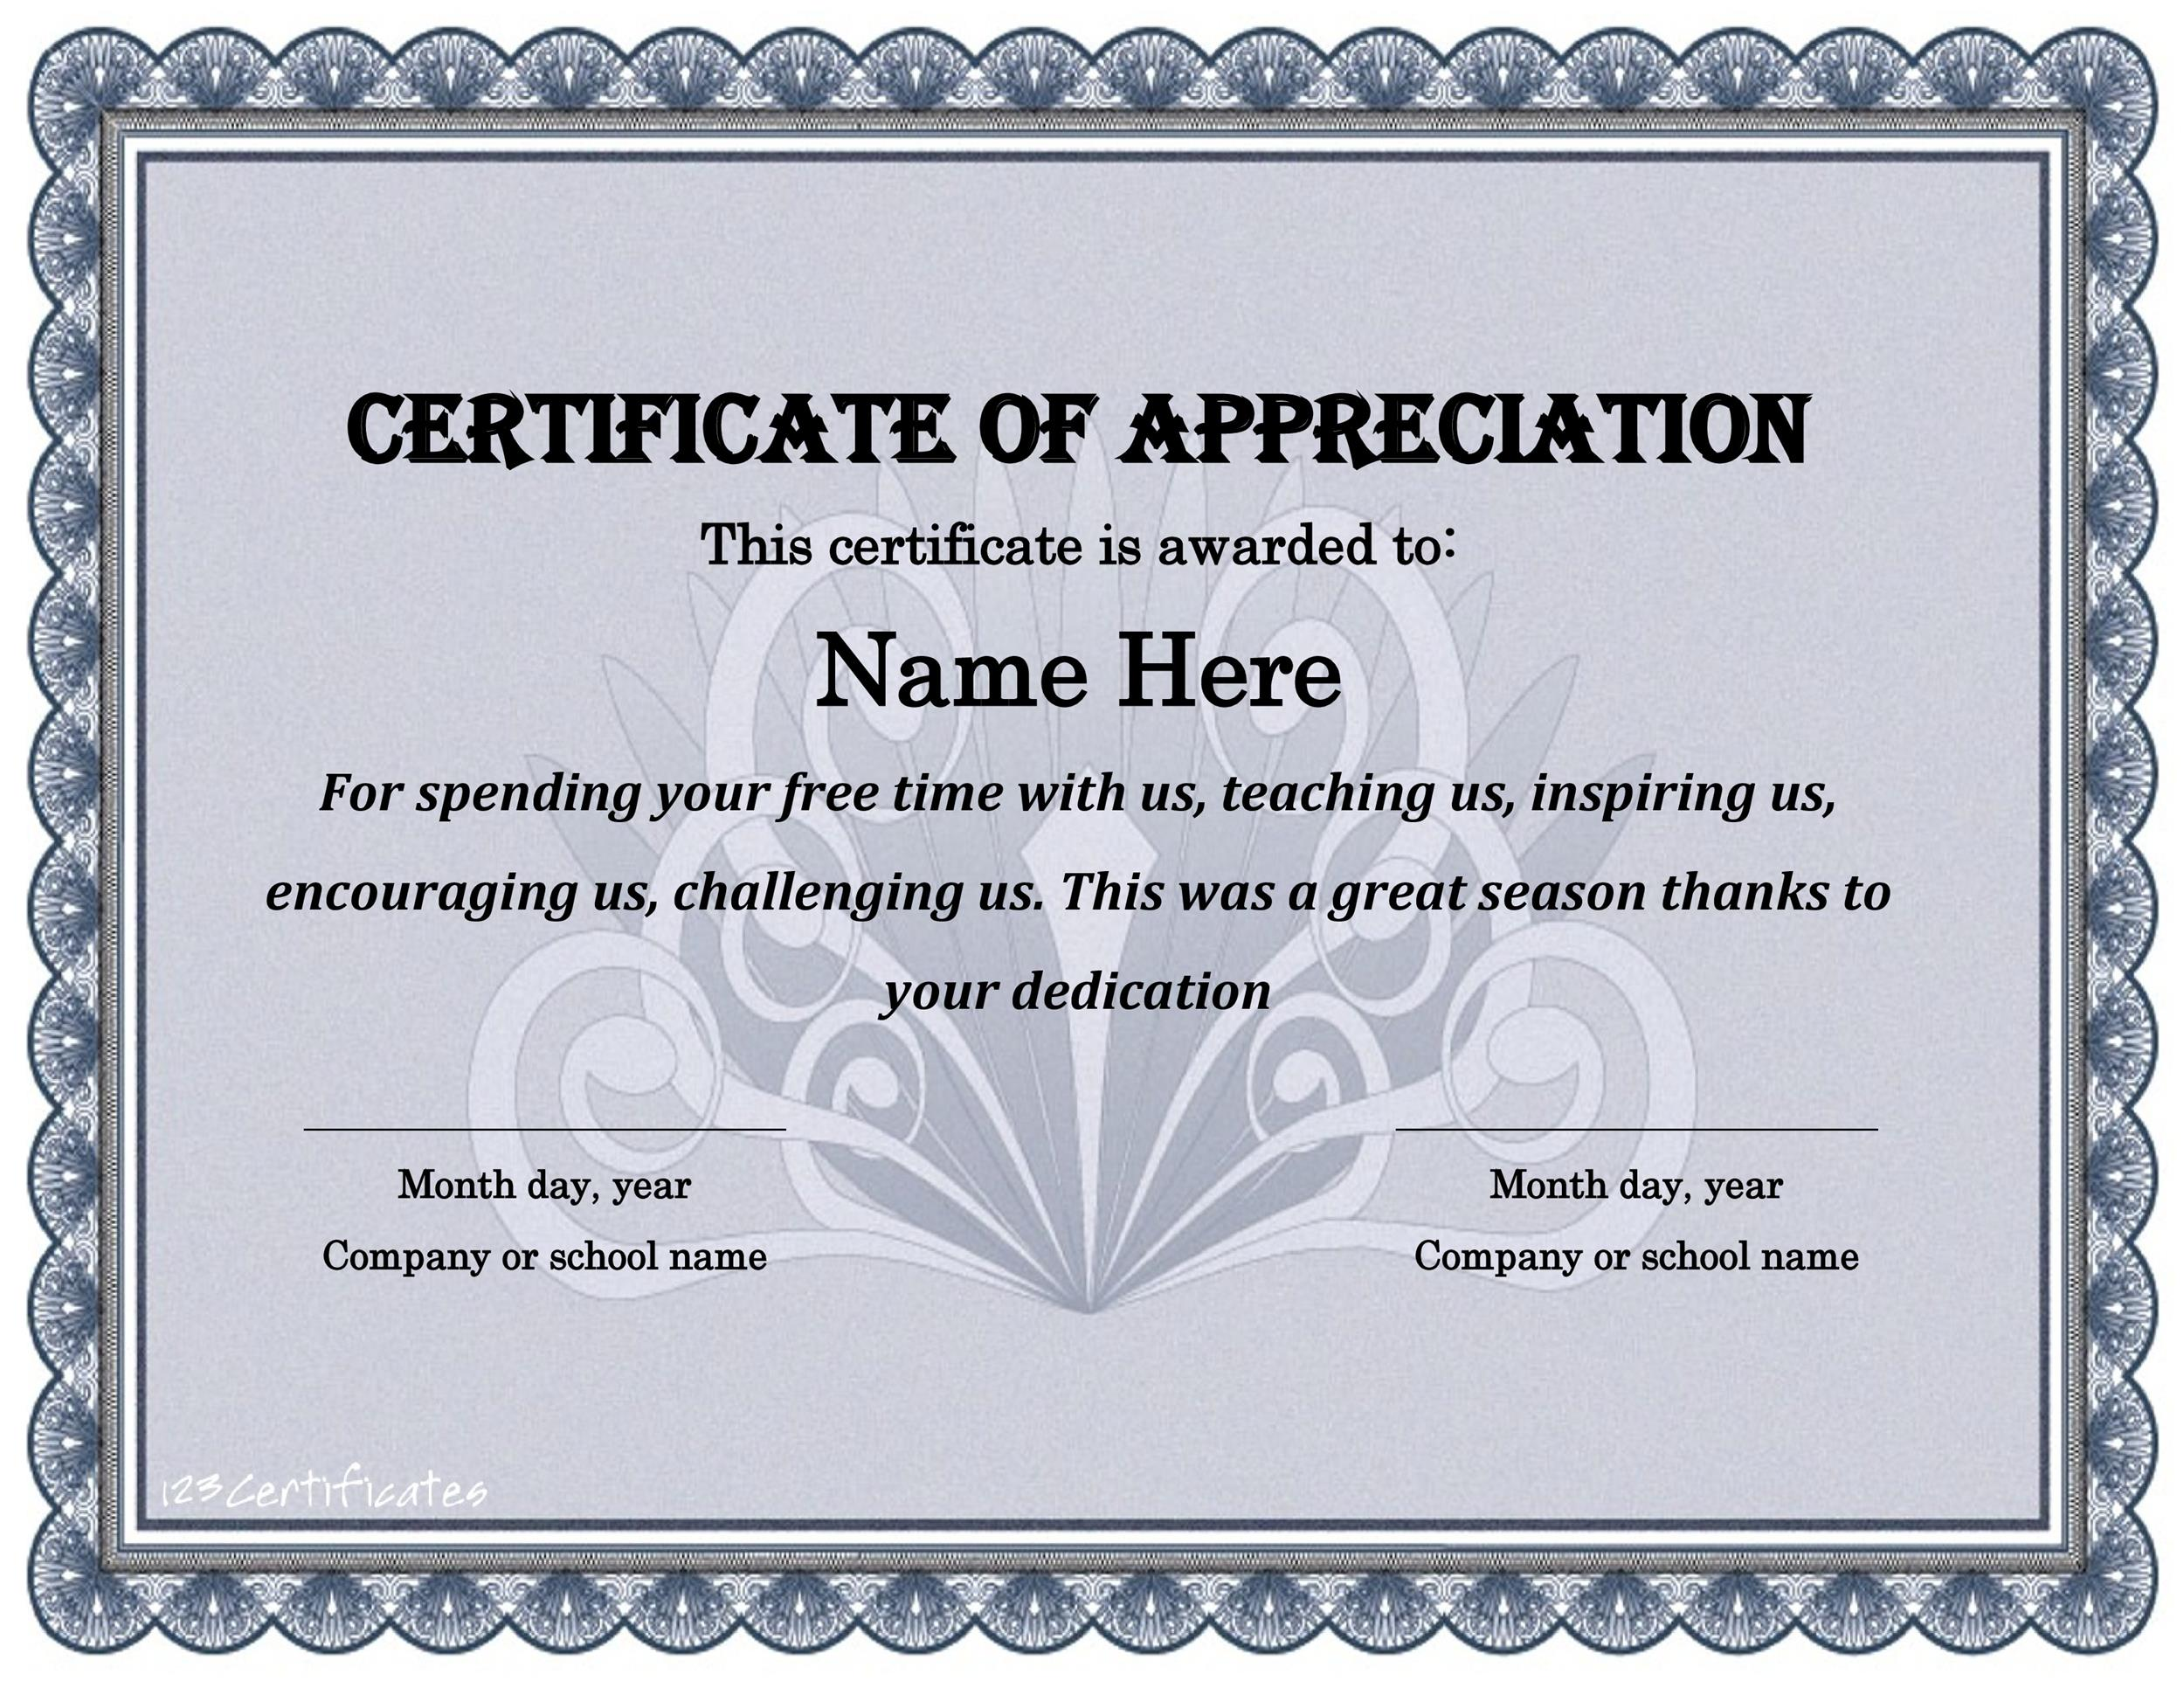 30 Free Certificate of Appreciation Templates and Letters - free appreciation certificate templates